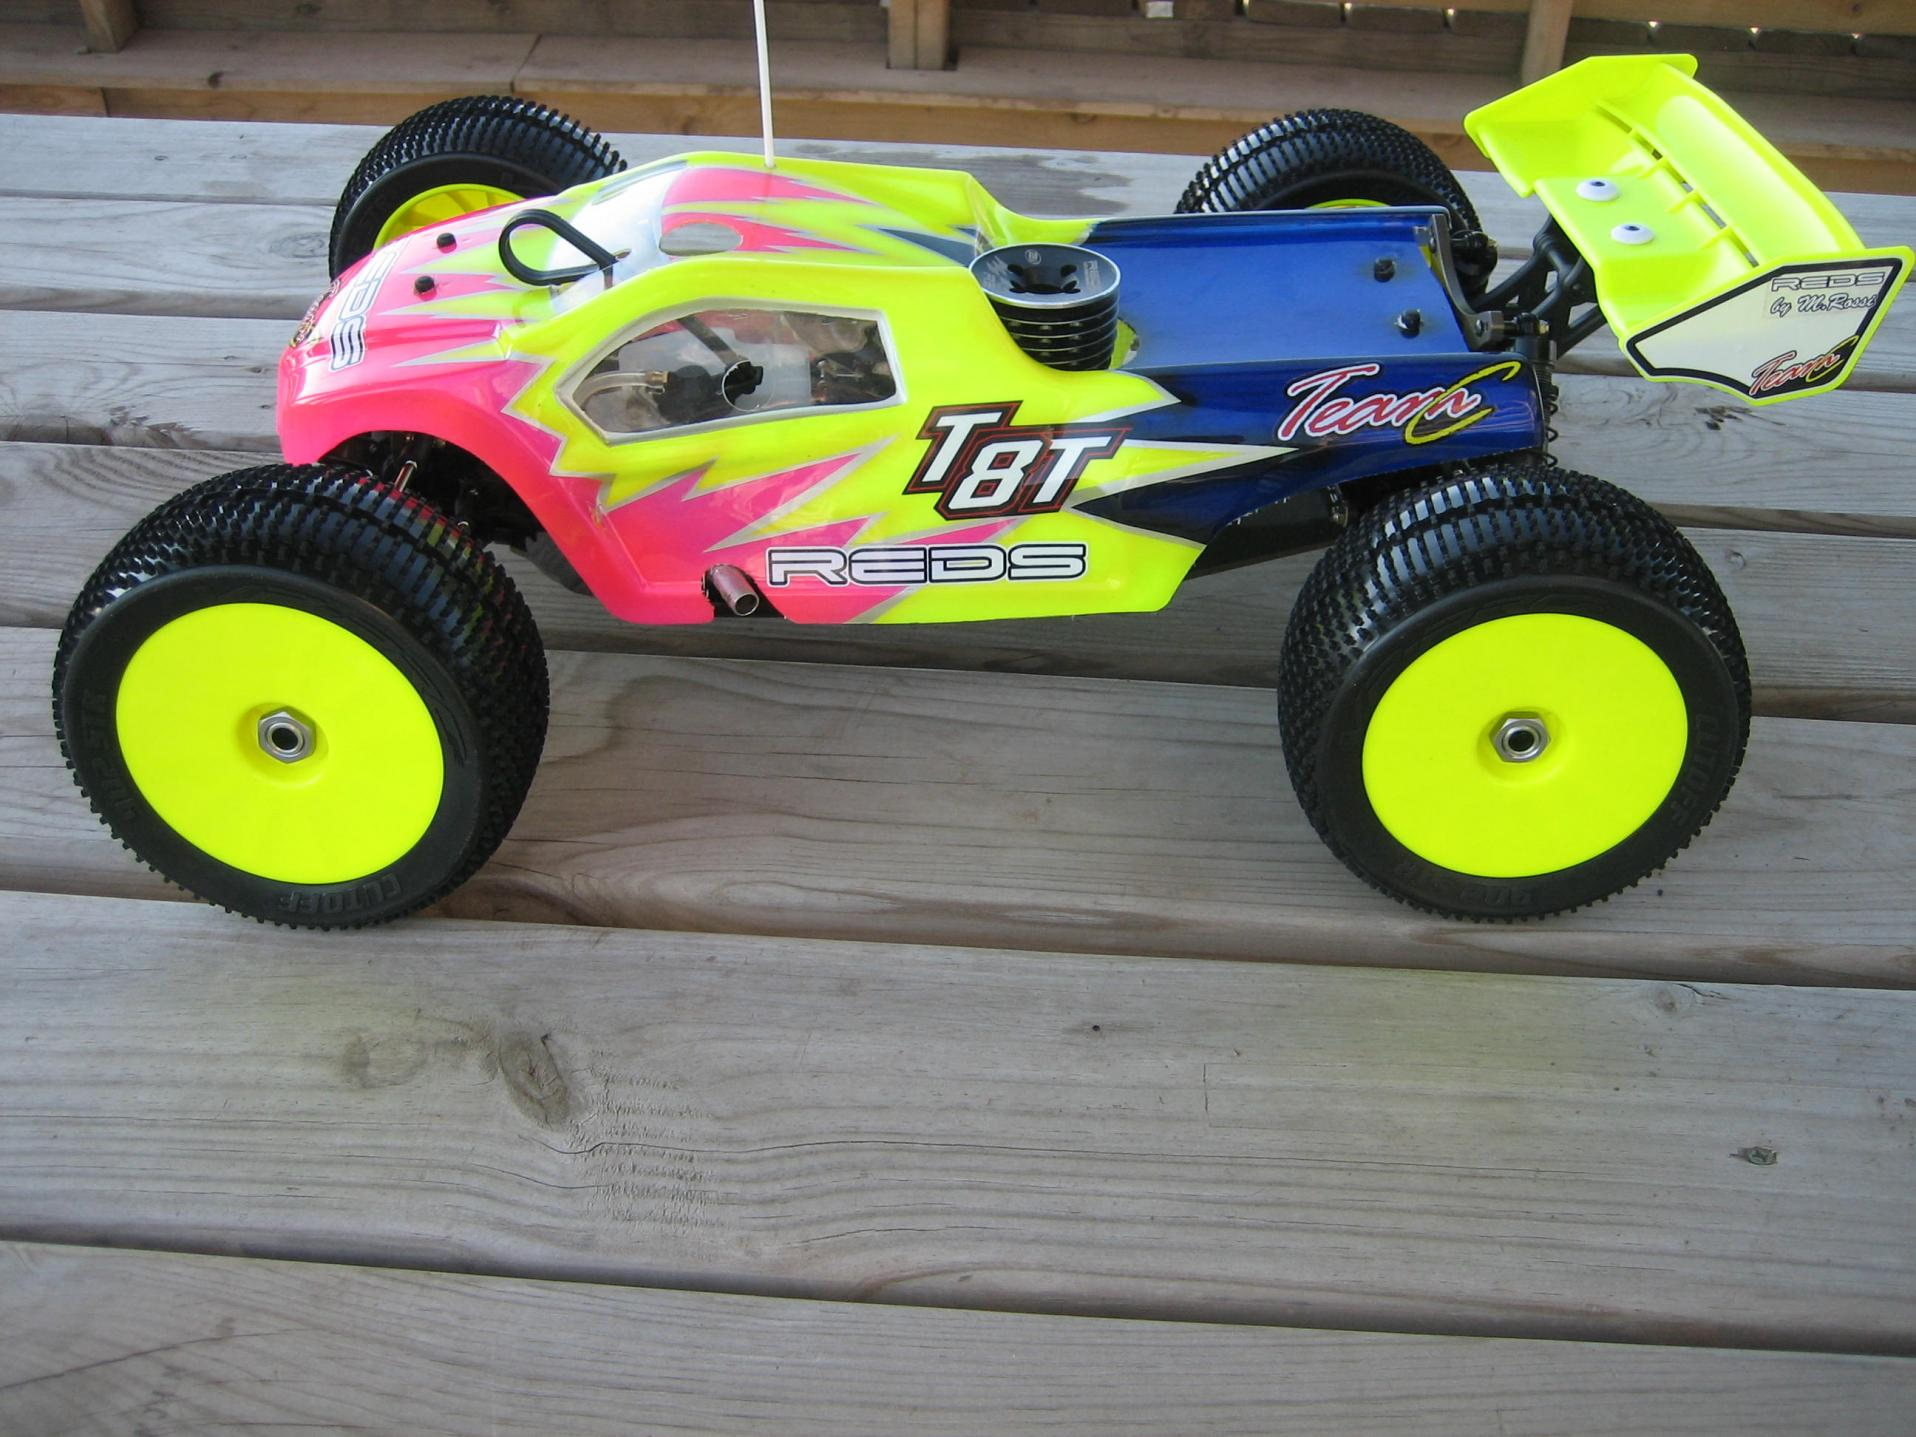 team c Find great deals on ebay for team c racing in radio control engines, parts, and accessories shop with confidence.